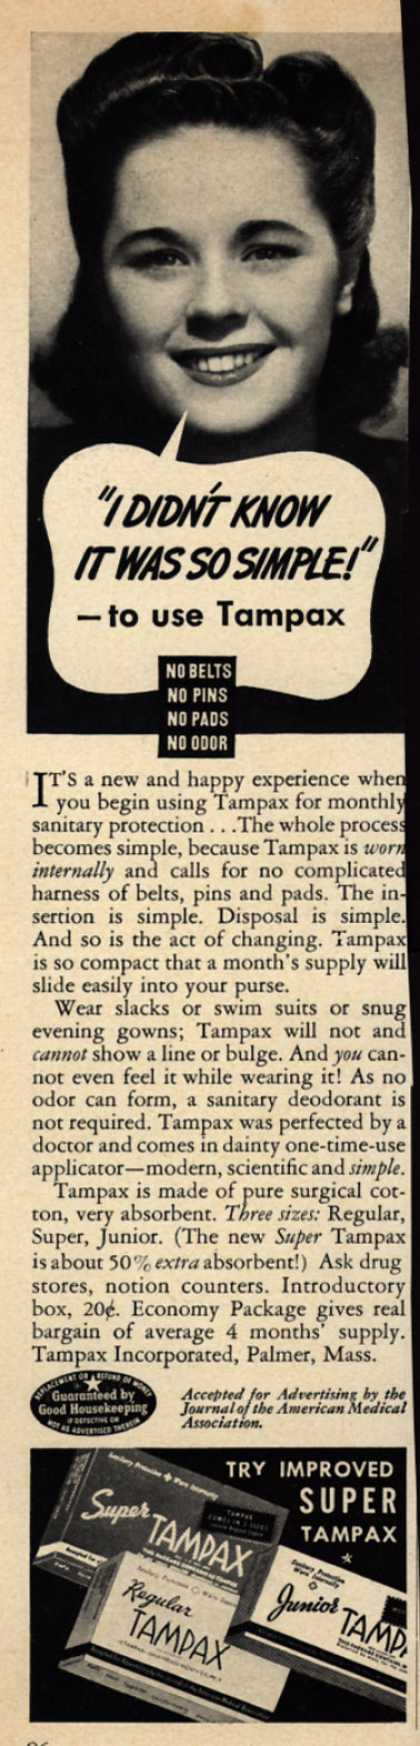 "Tampax's Tampons – ""I Didn't Know It Was So Simple!""-to use Tampax (1942)"